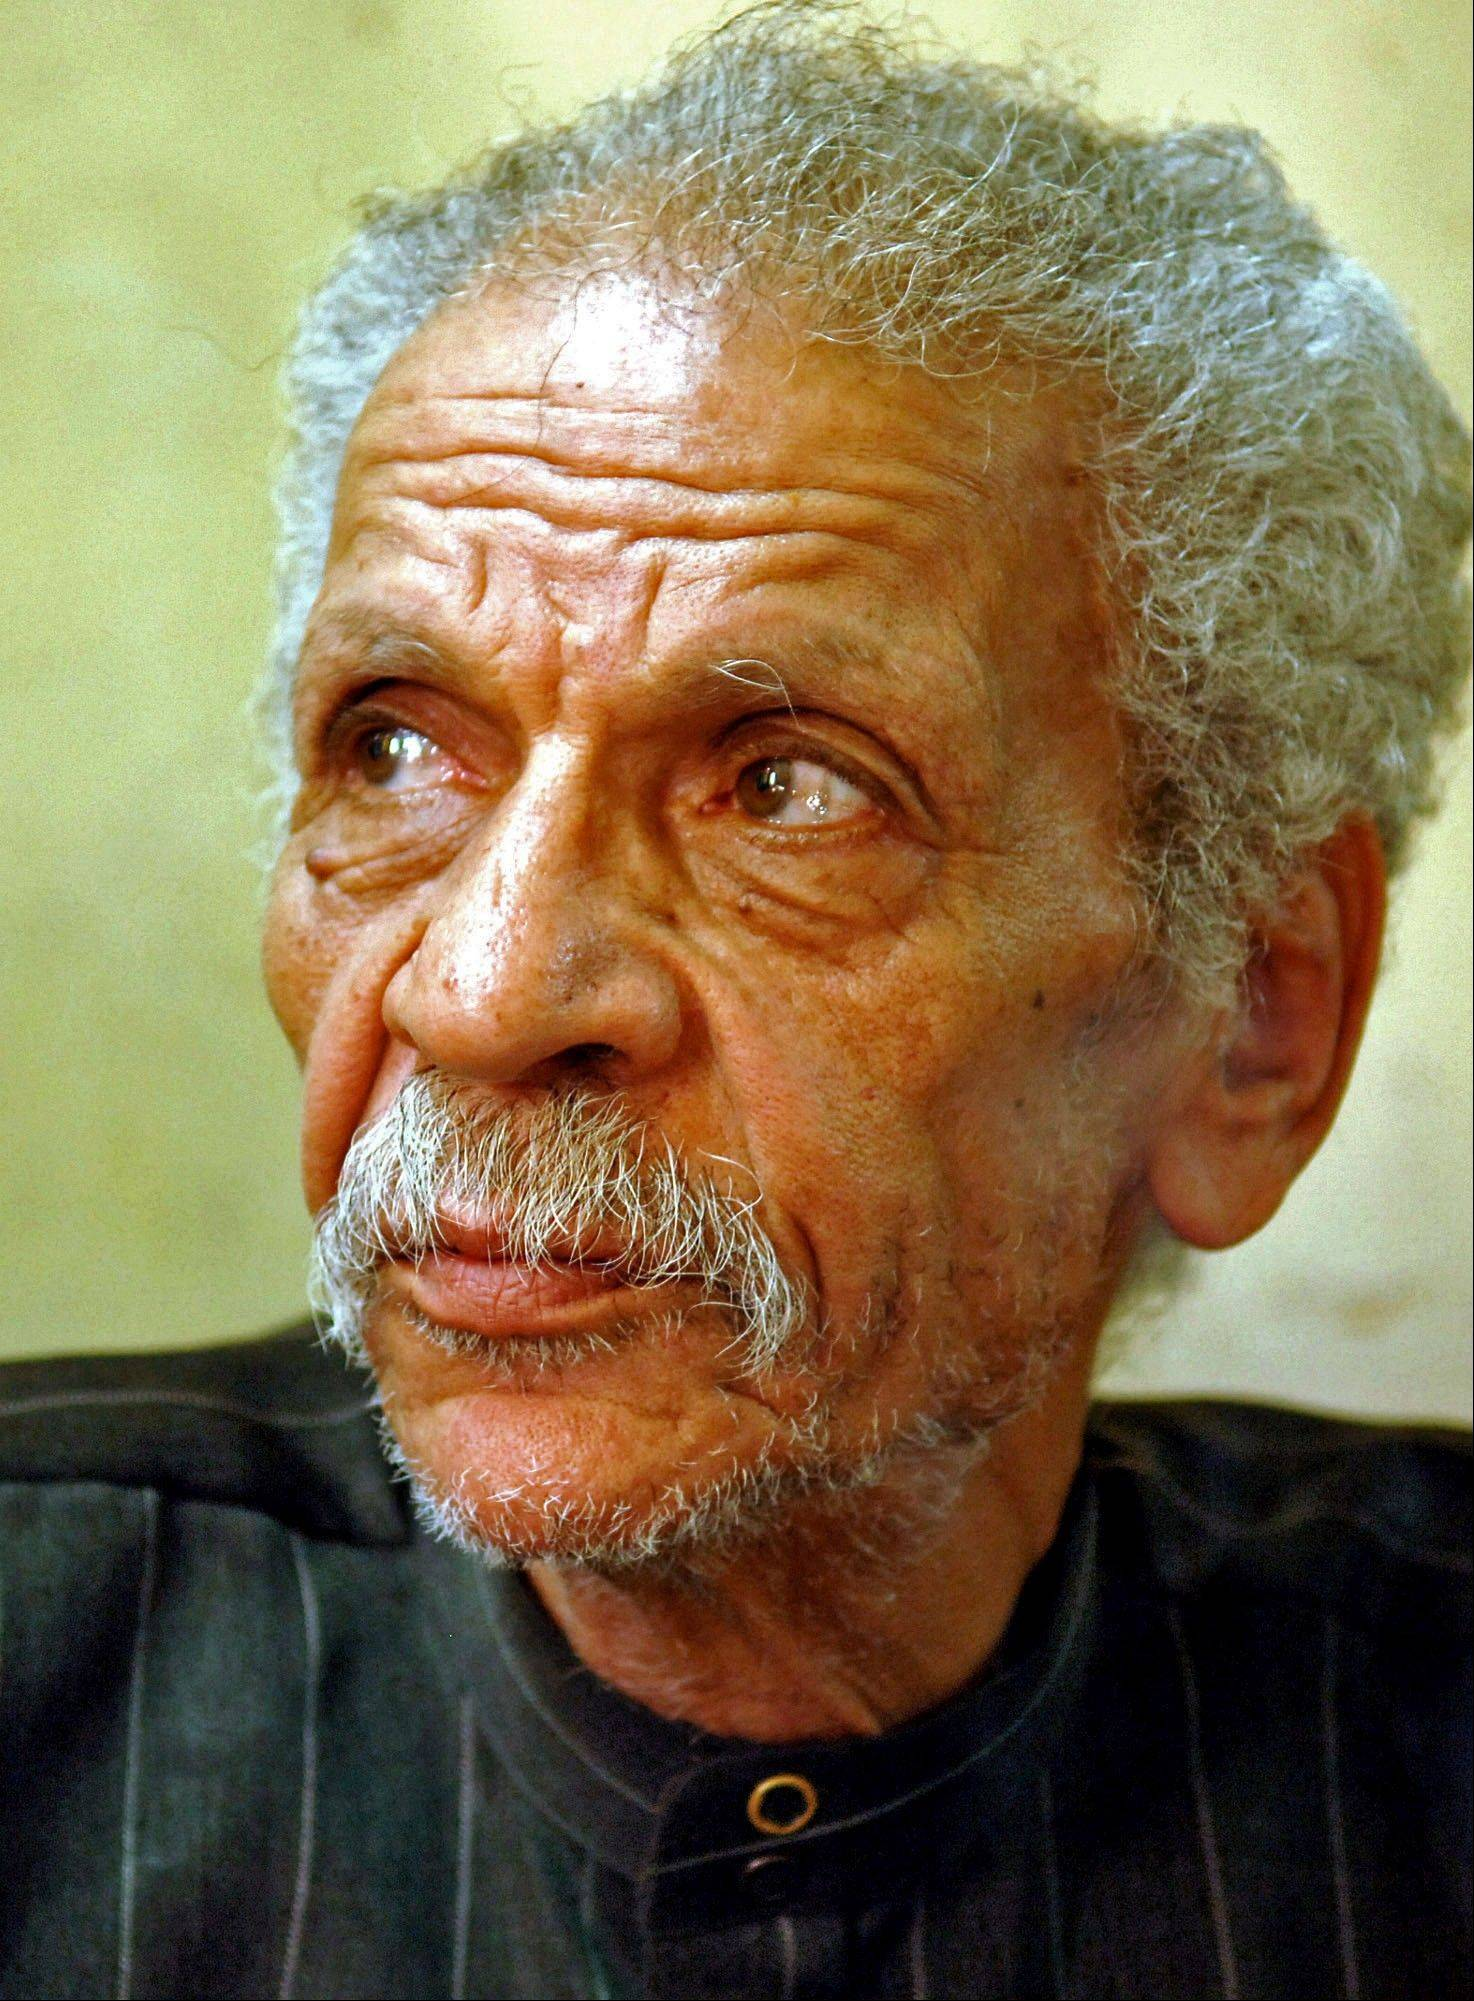 Egypt�s best known satirical poet, Ahmed Fouad Negm, has died at 84, early on Tuesday.